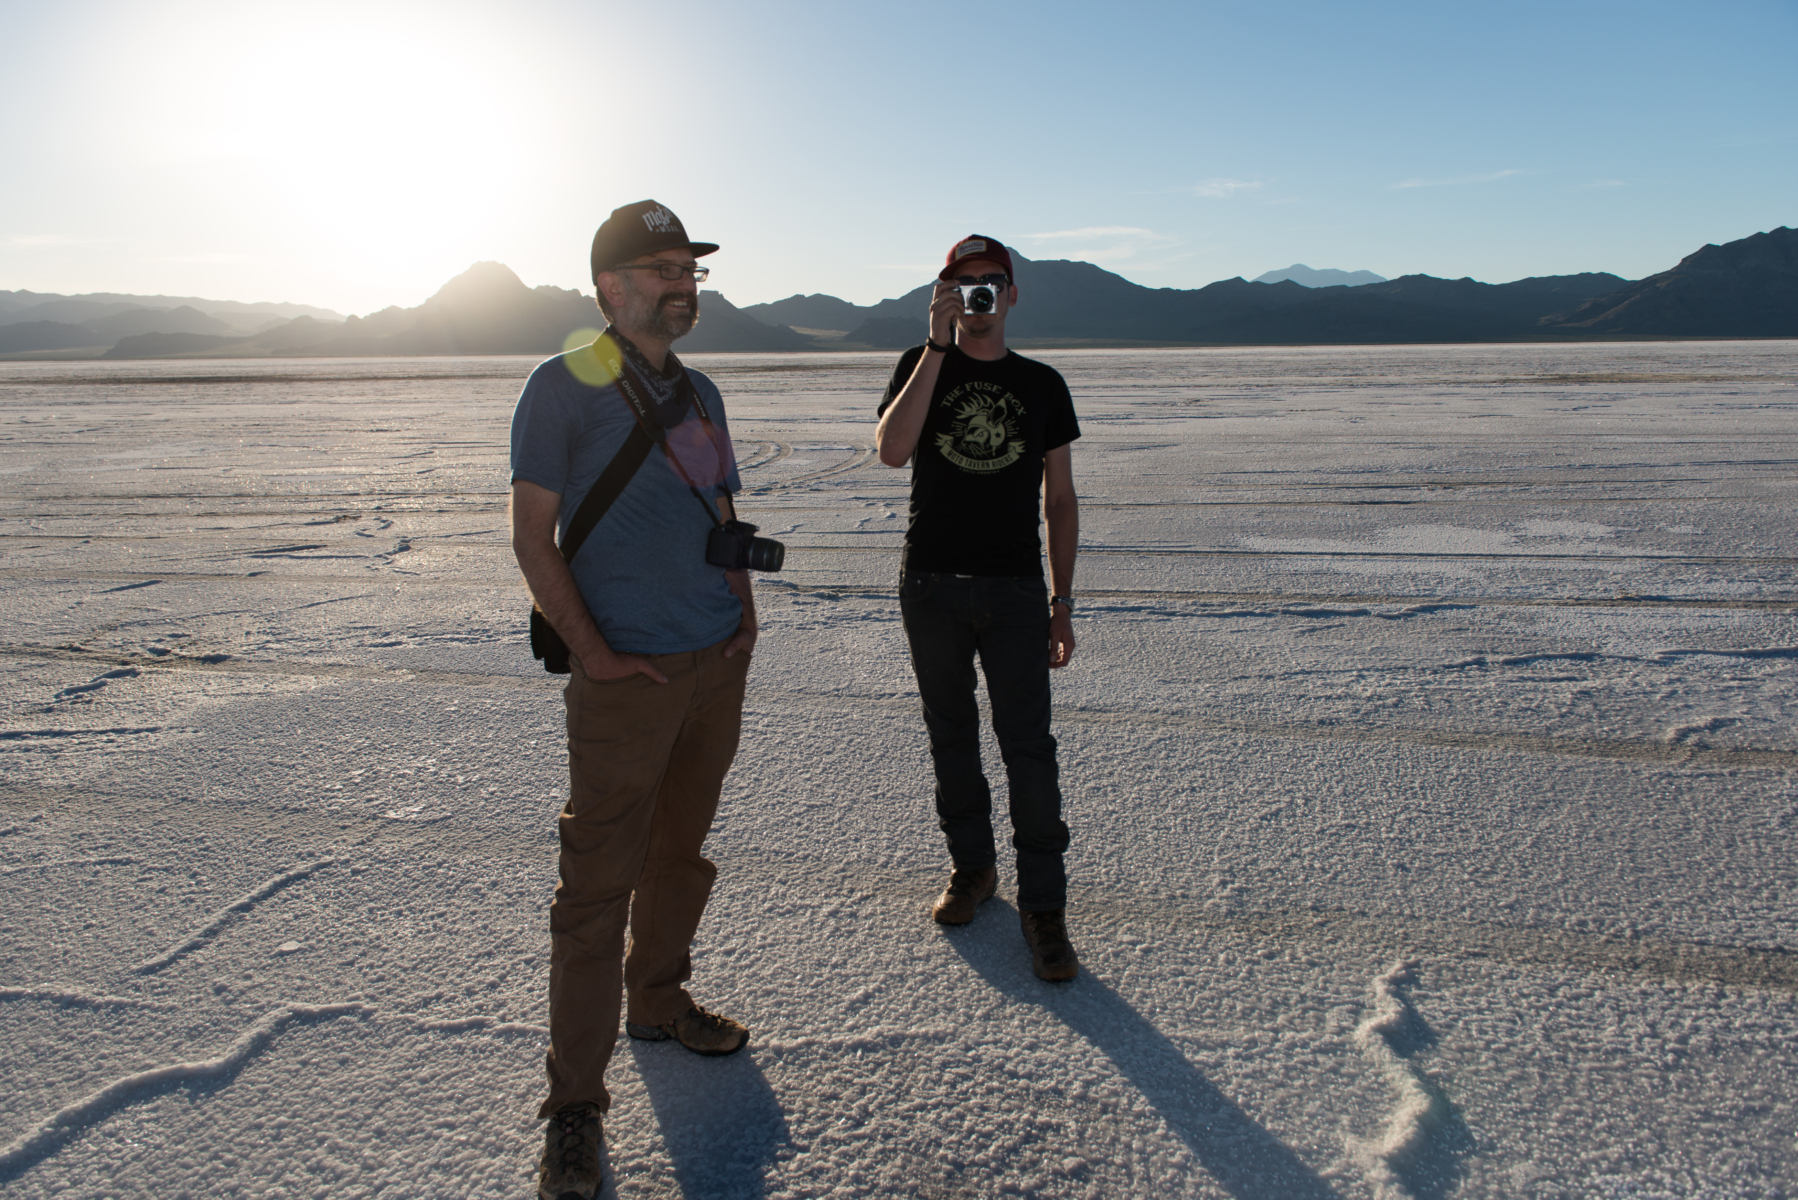 Photos on the Bonneville Salt Flats